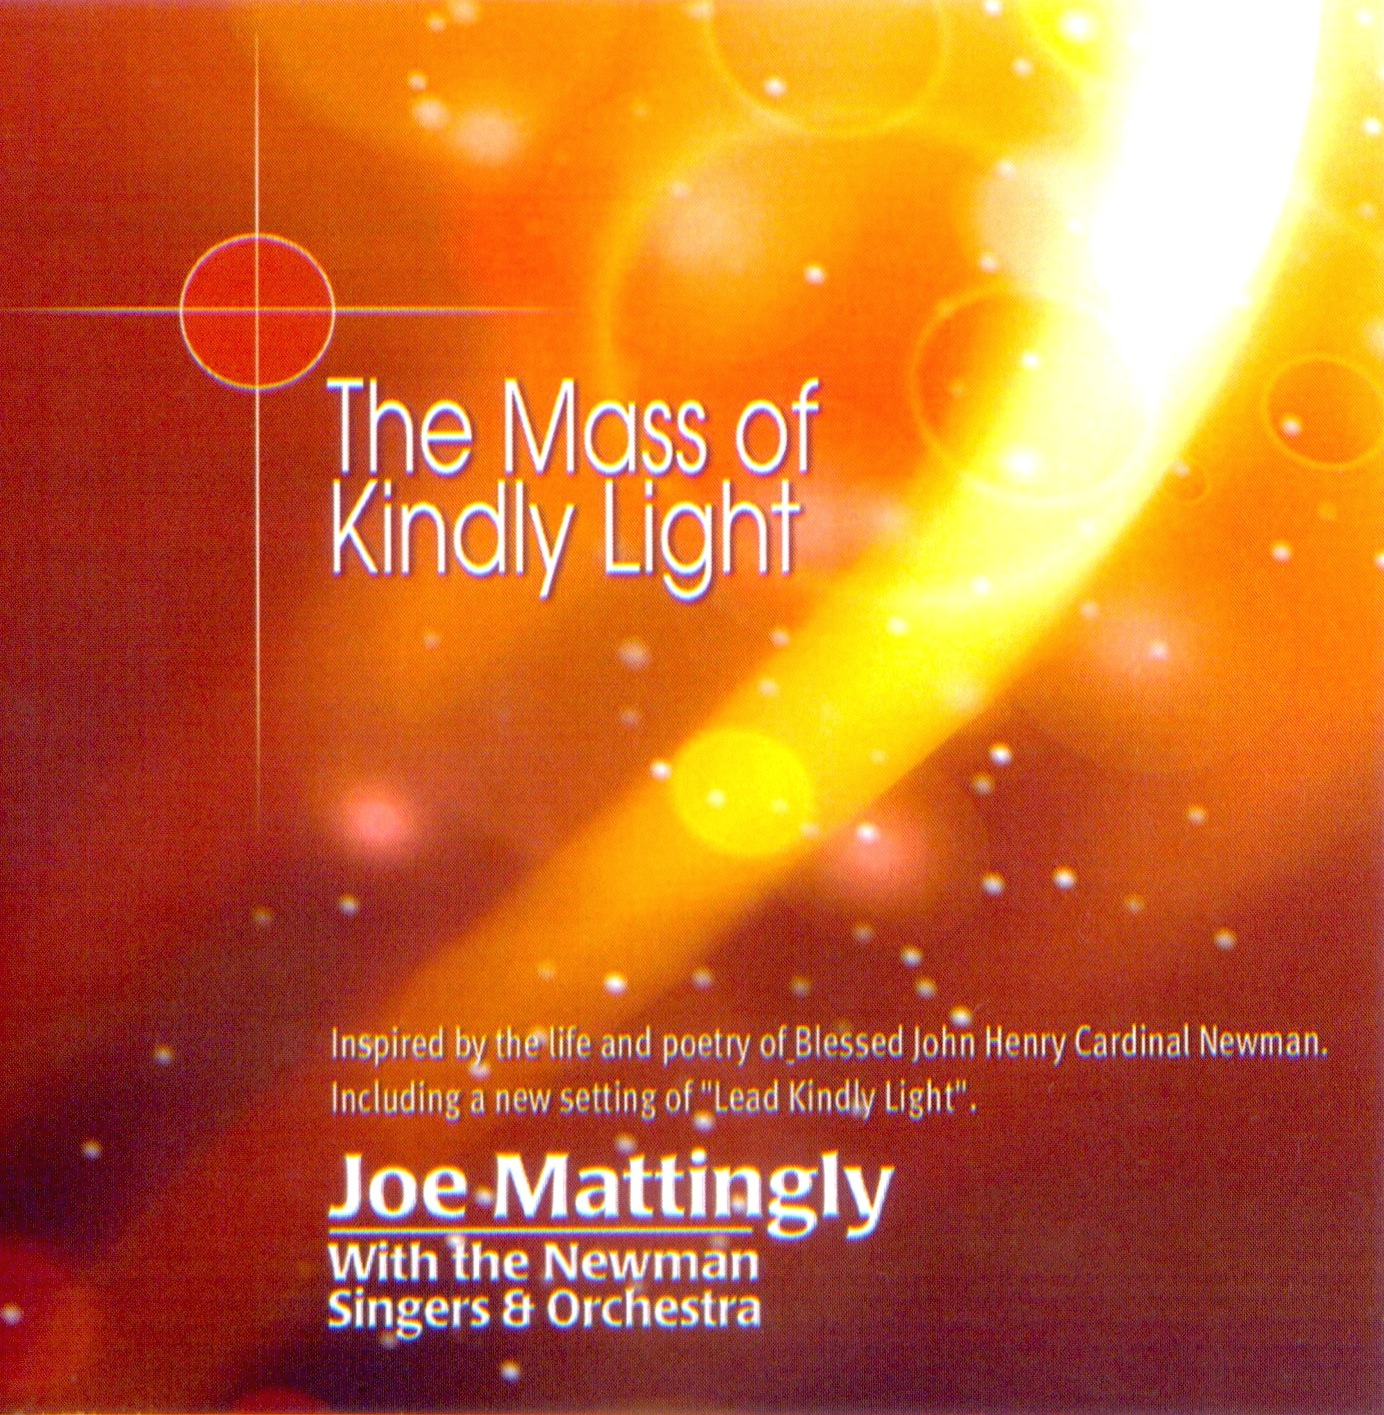 The Mass of Kindly Light